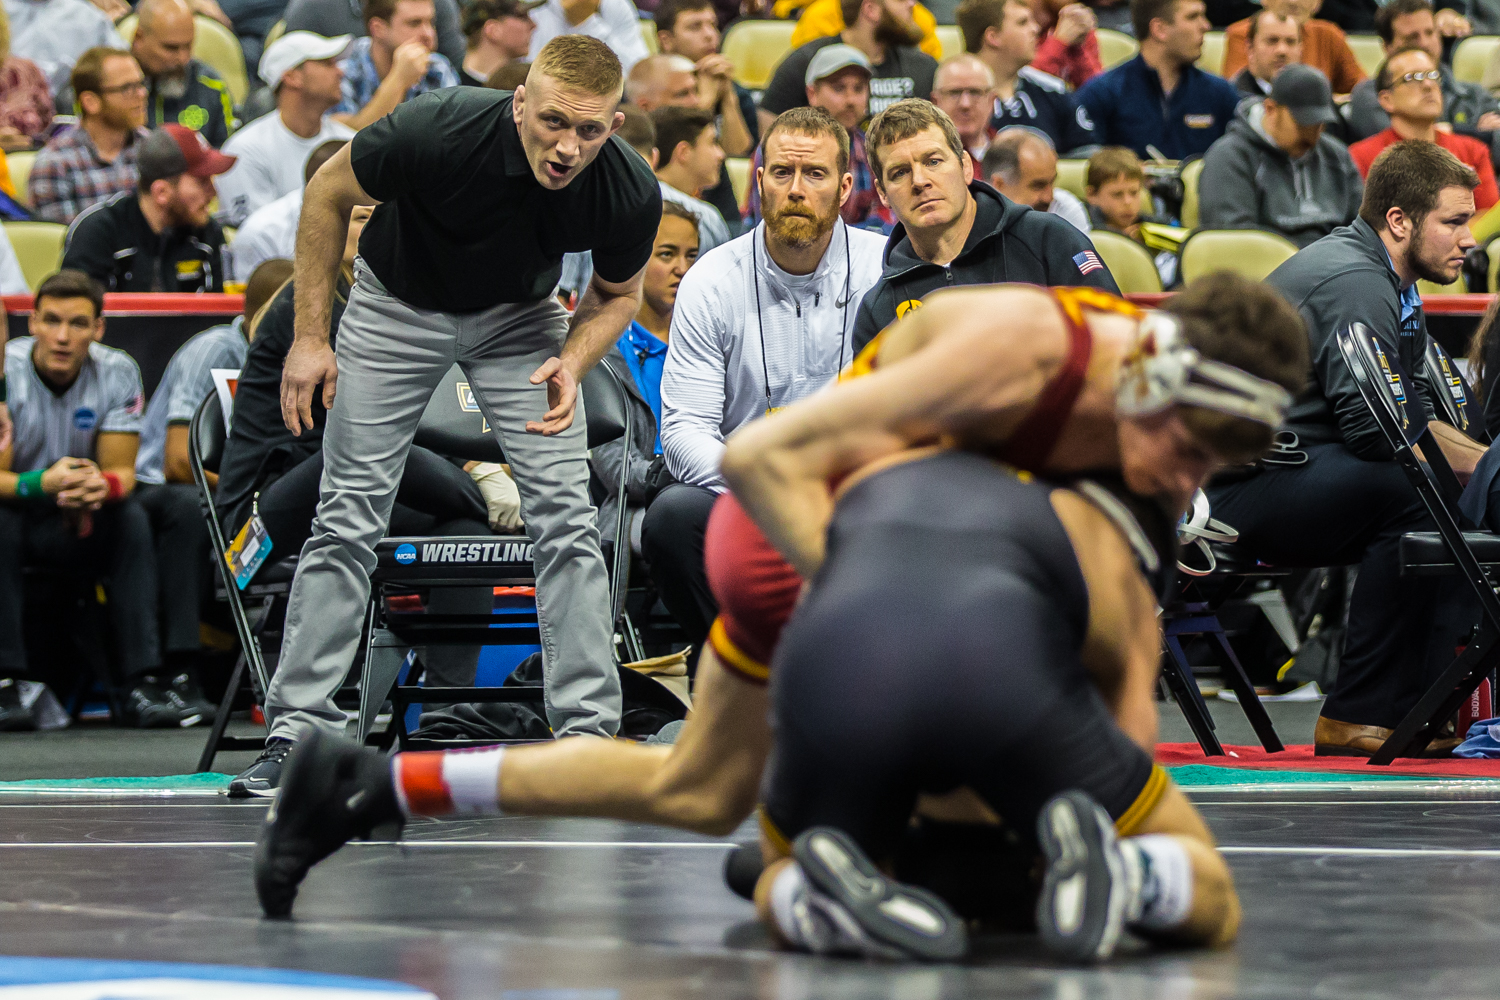 Iowa+coaches+watch+as+149-pound+Pat+Lugo+wrestles+Iowa+State%E2%80%99s+Jarrett+Degen+during+the+fifth+session+of+the+2019+NCAA+D1+Wrestling+Championships+at+the+PPG+Paints+Arena+in+Pittsburgh%2C+PA+on+Saturday%2C+March+23%2C+2019.+Degen+won+by+decision%2C+11-9%2C+and+earned+seventh+in+the+weight+class.